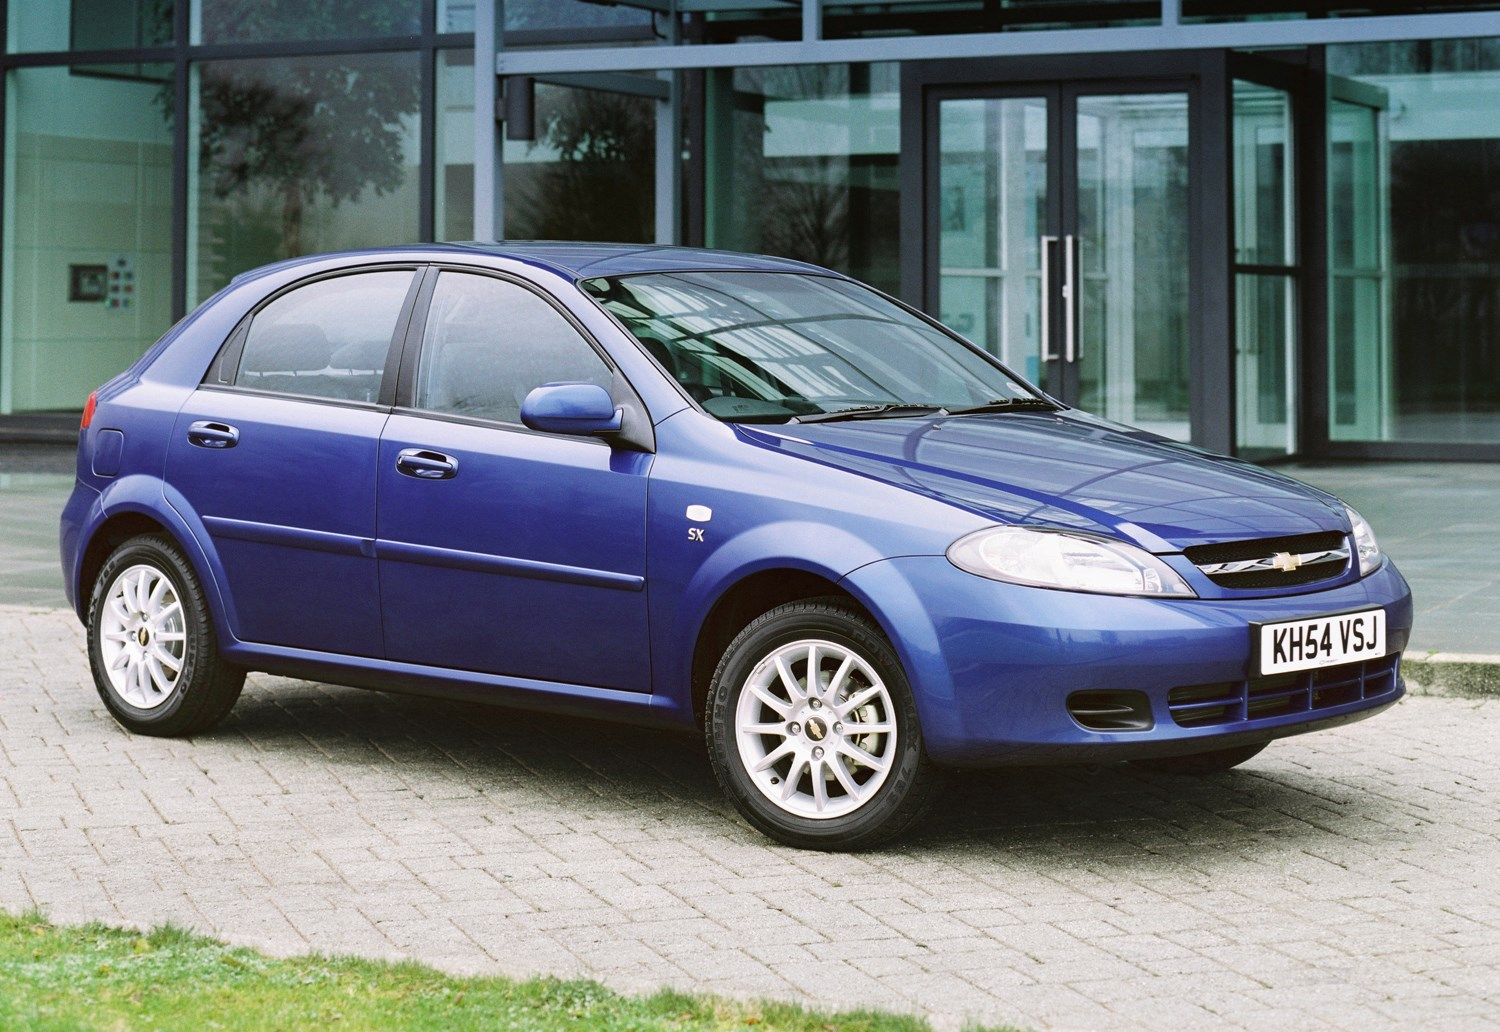 Chevrolet Lacetti Hatchback Review (2005 - 2011) | Parkers